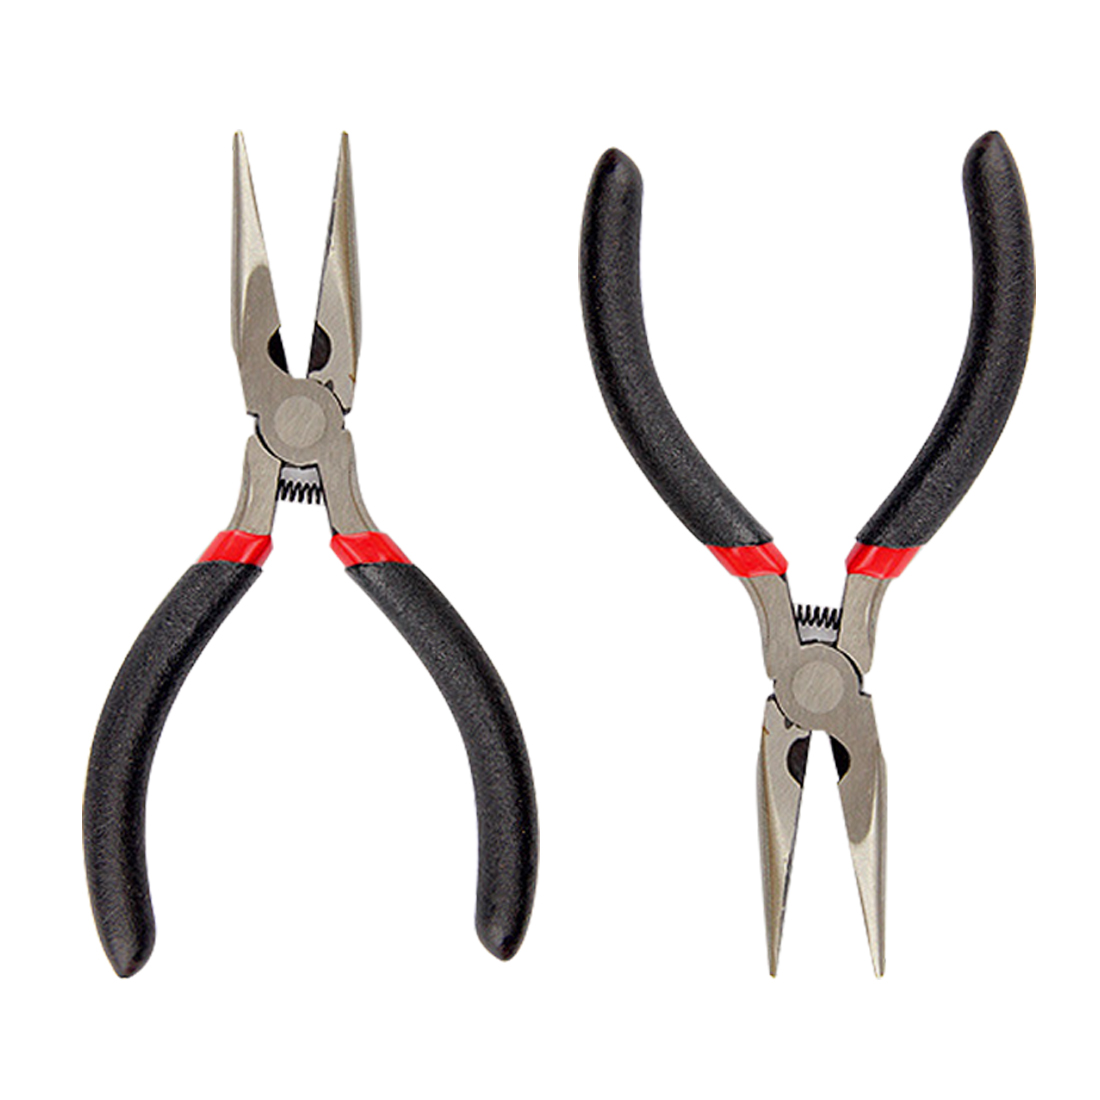 1pc Portable Mini Needle Nose Pliers 120mm Length For DIY Beading Jewellery Making Tool